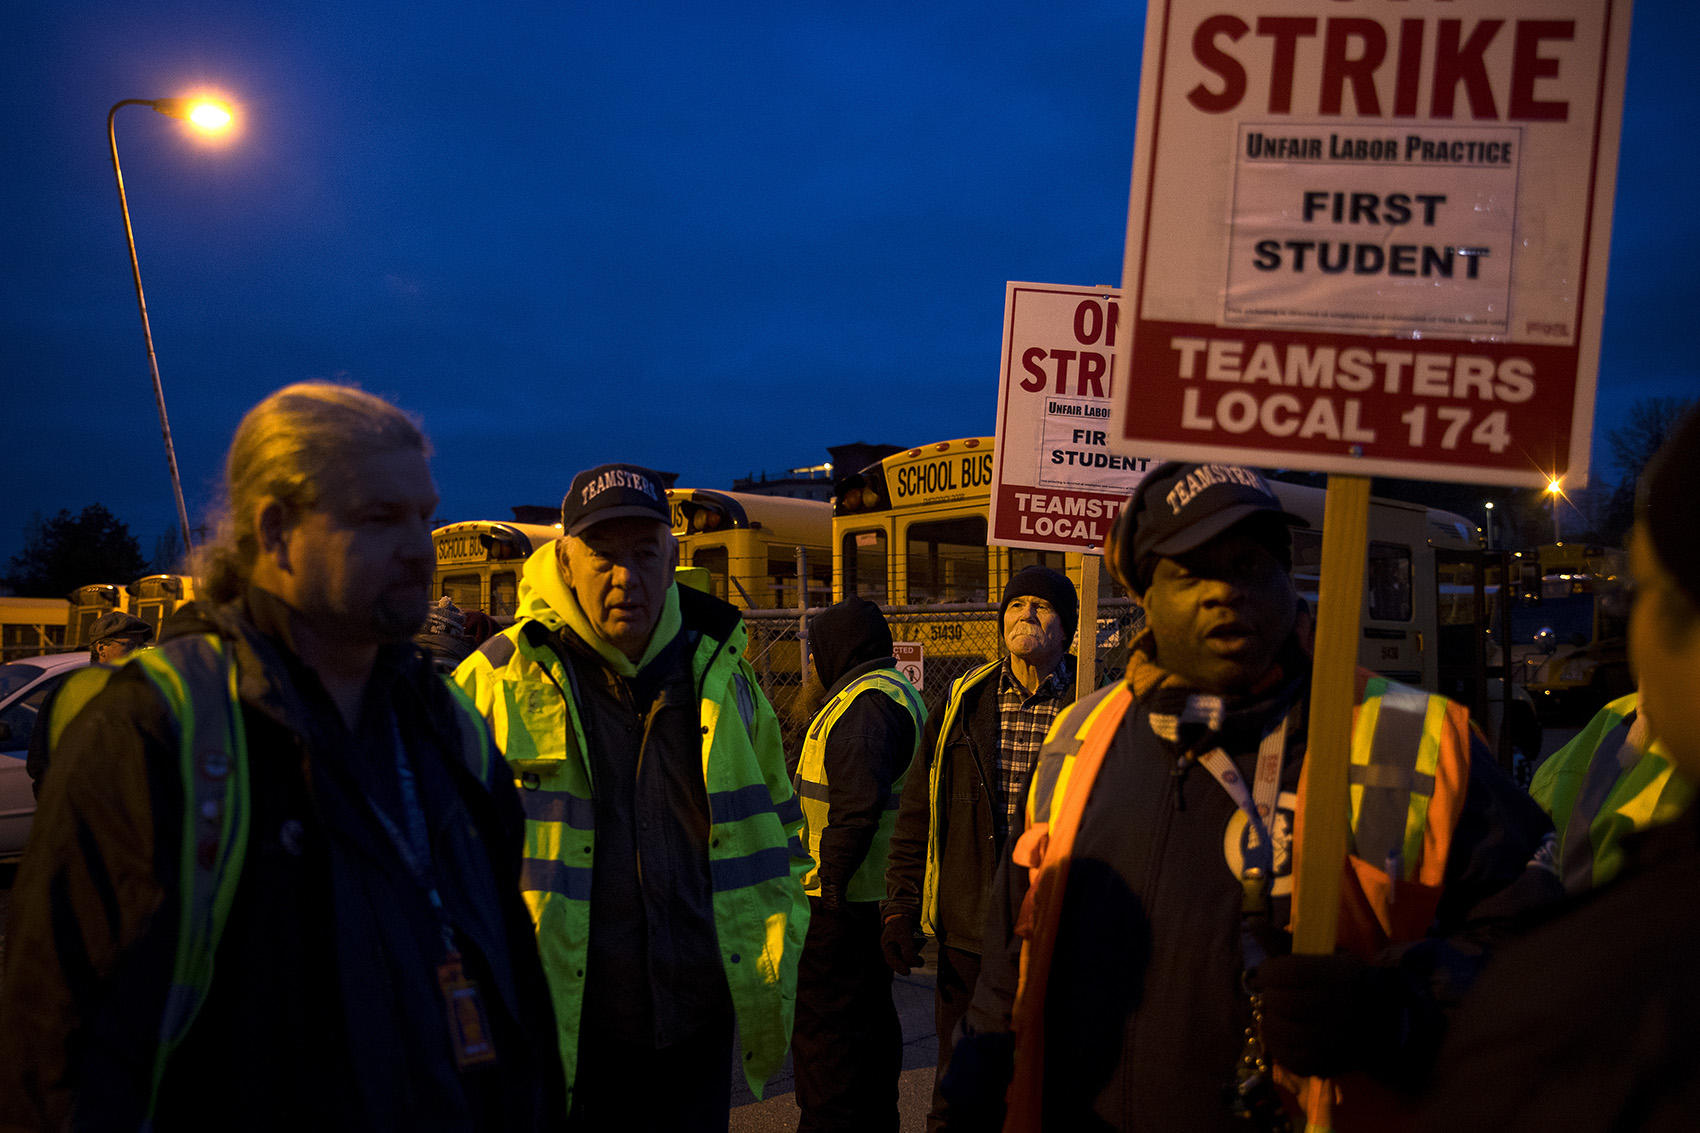 School bus drivers planning to strike tomorrow